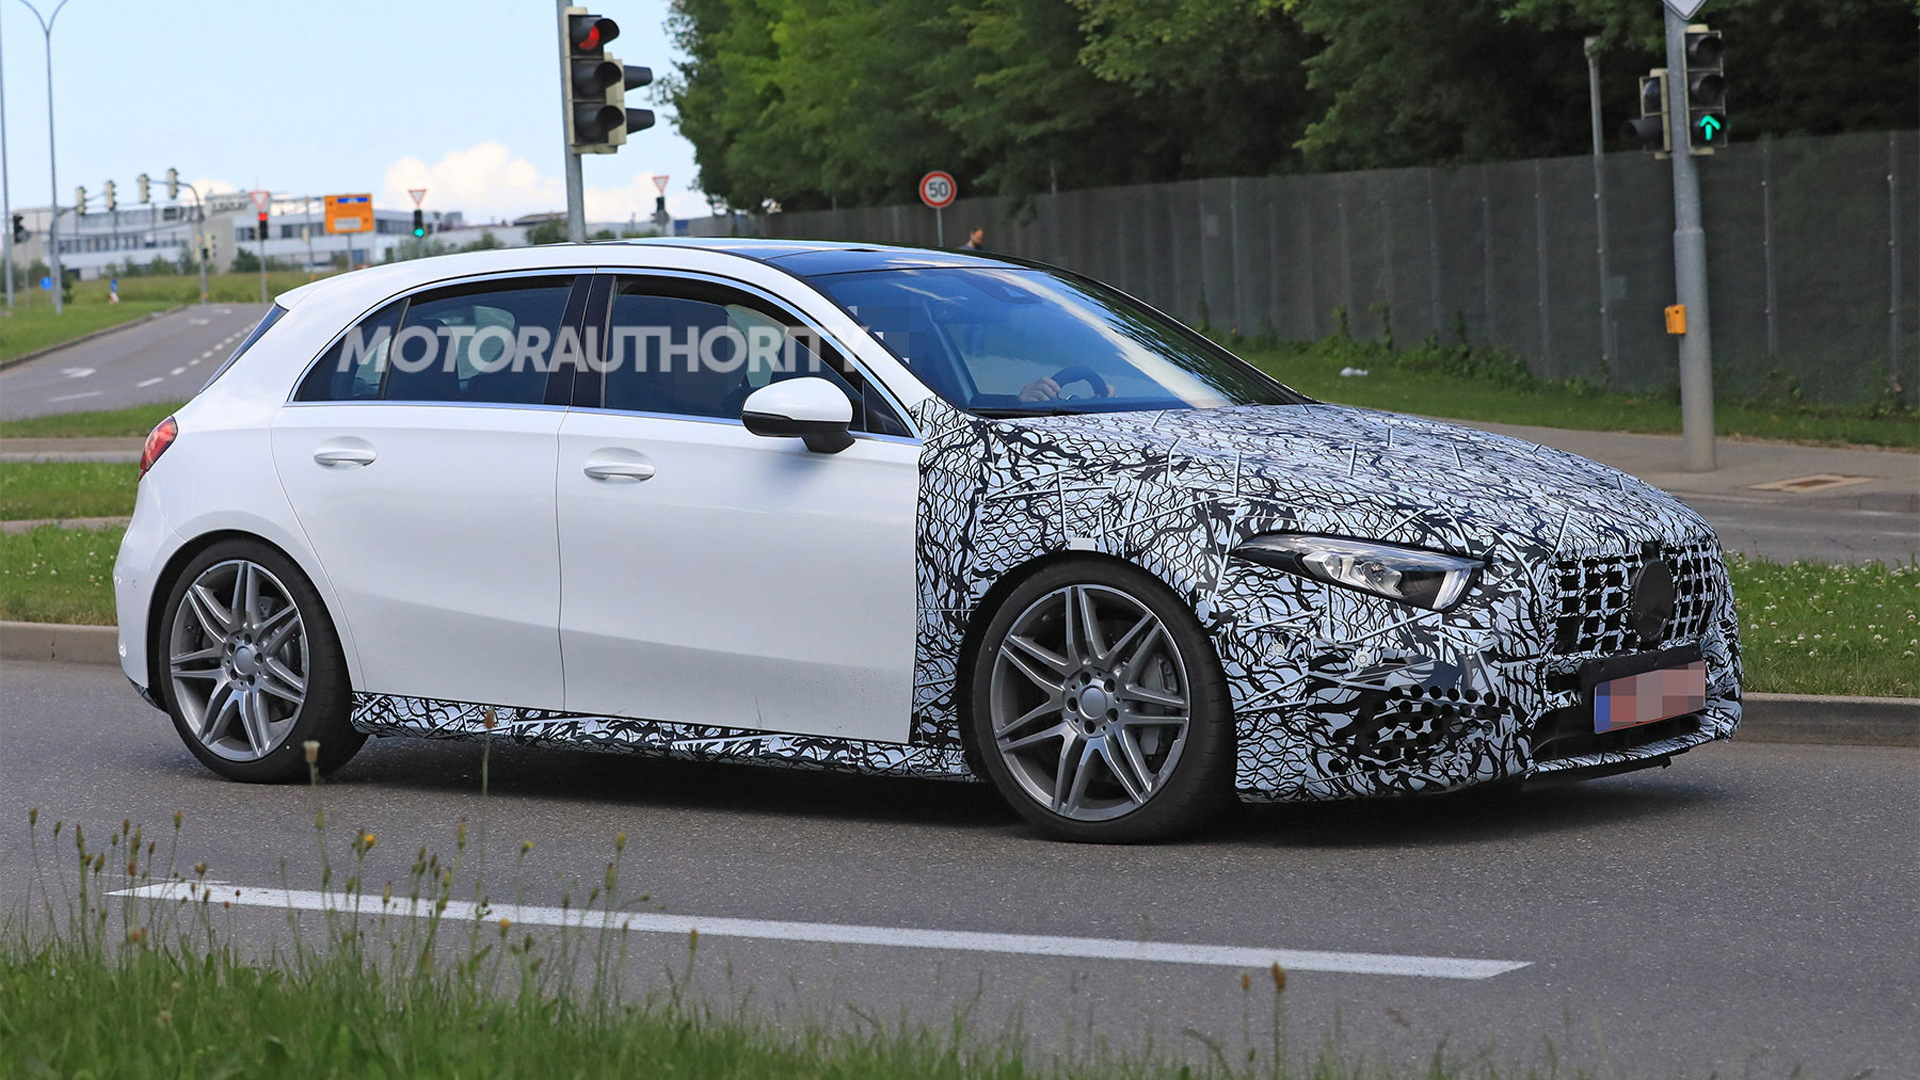 2020 Mercedes-AMG A45 horsepower figures possibly revealed via